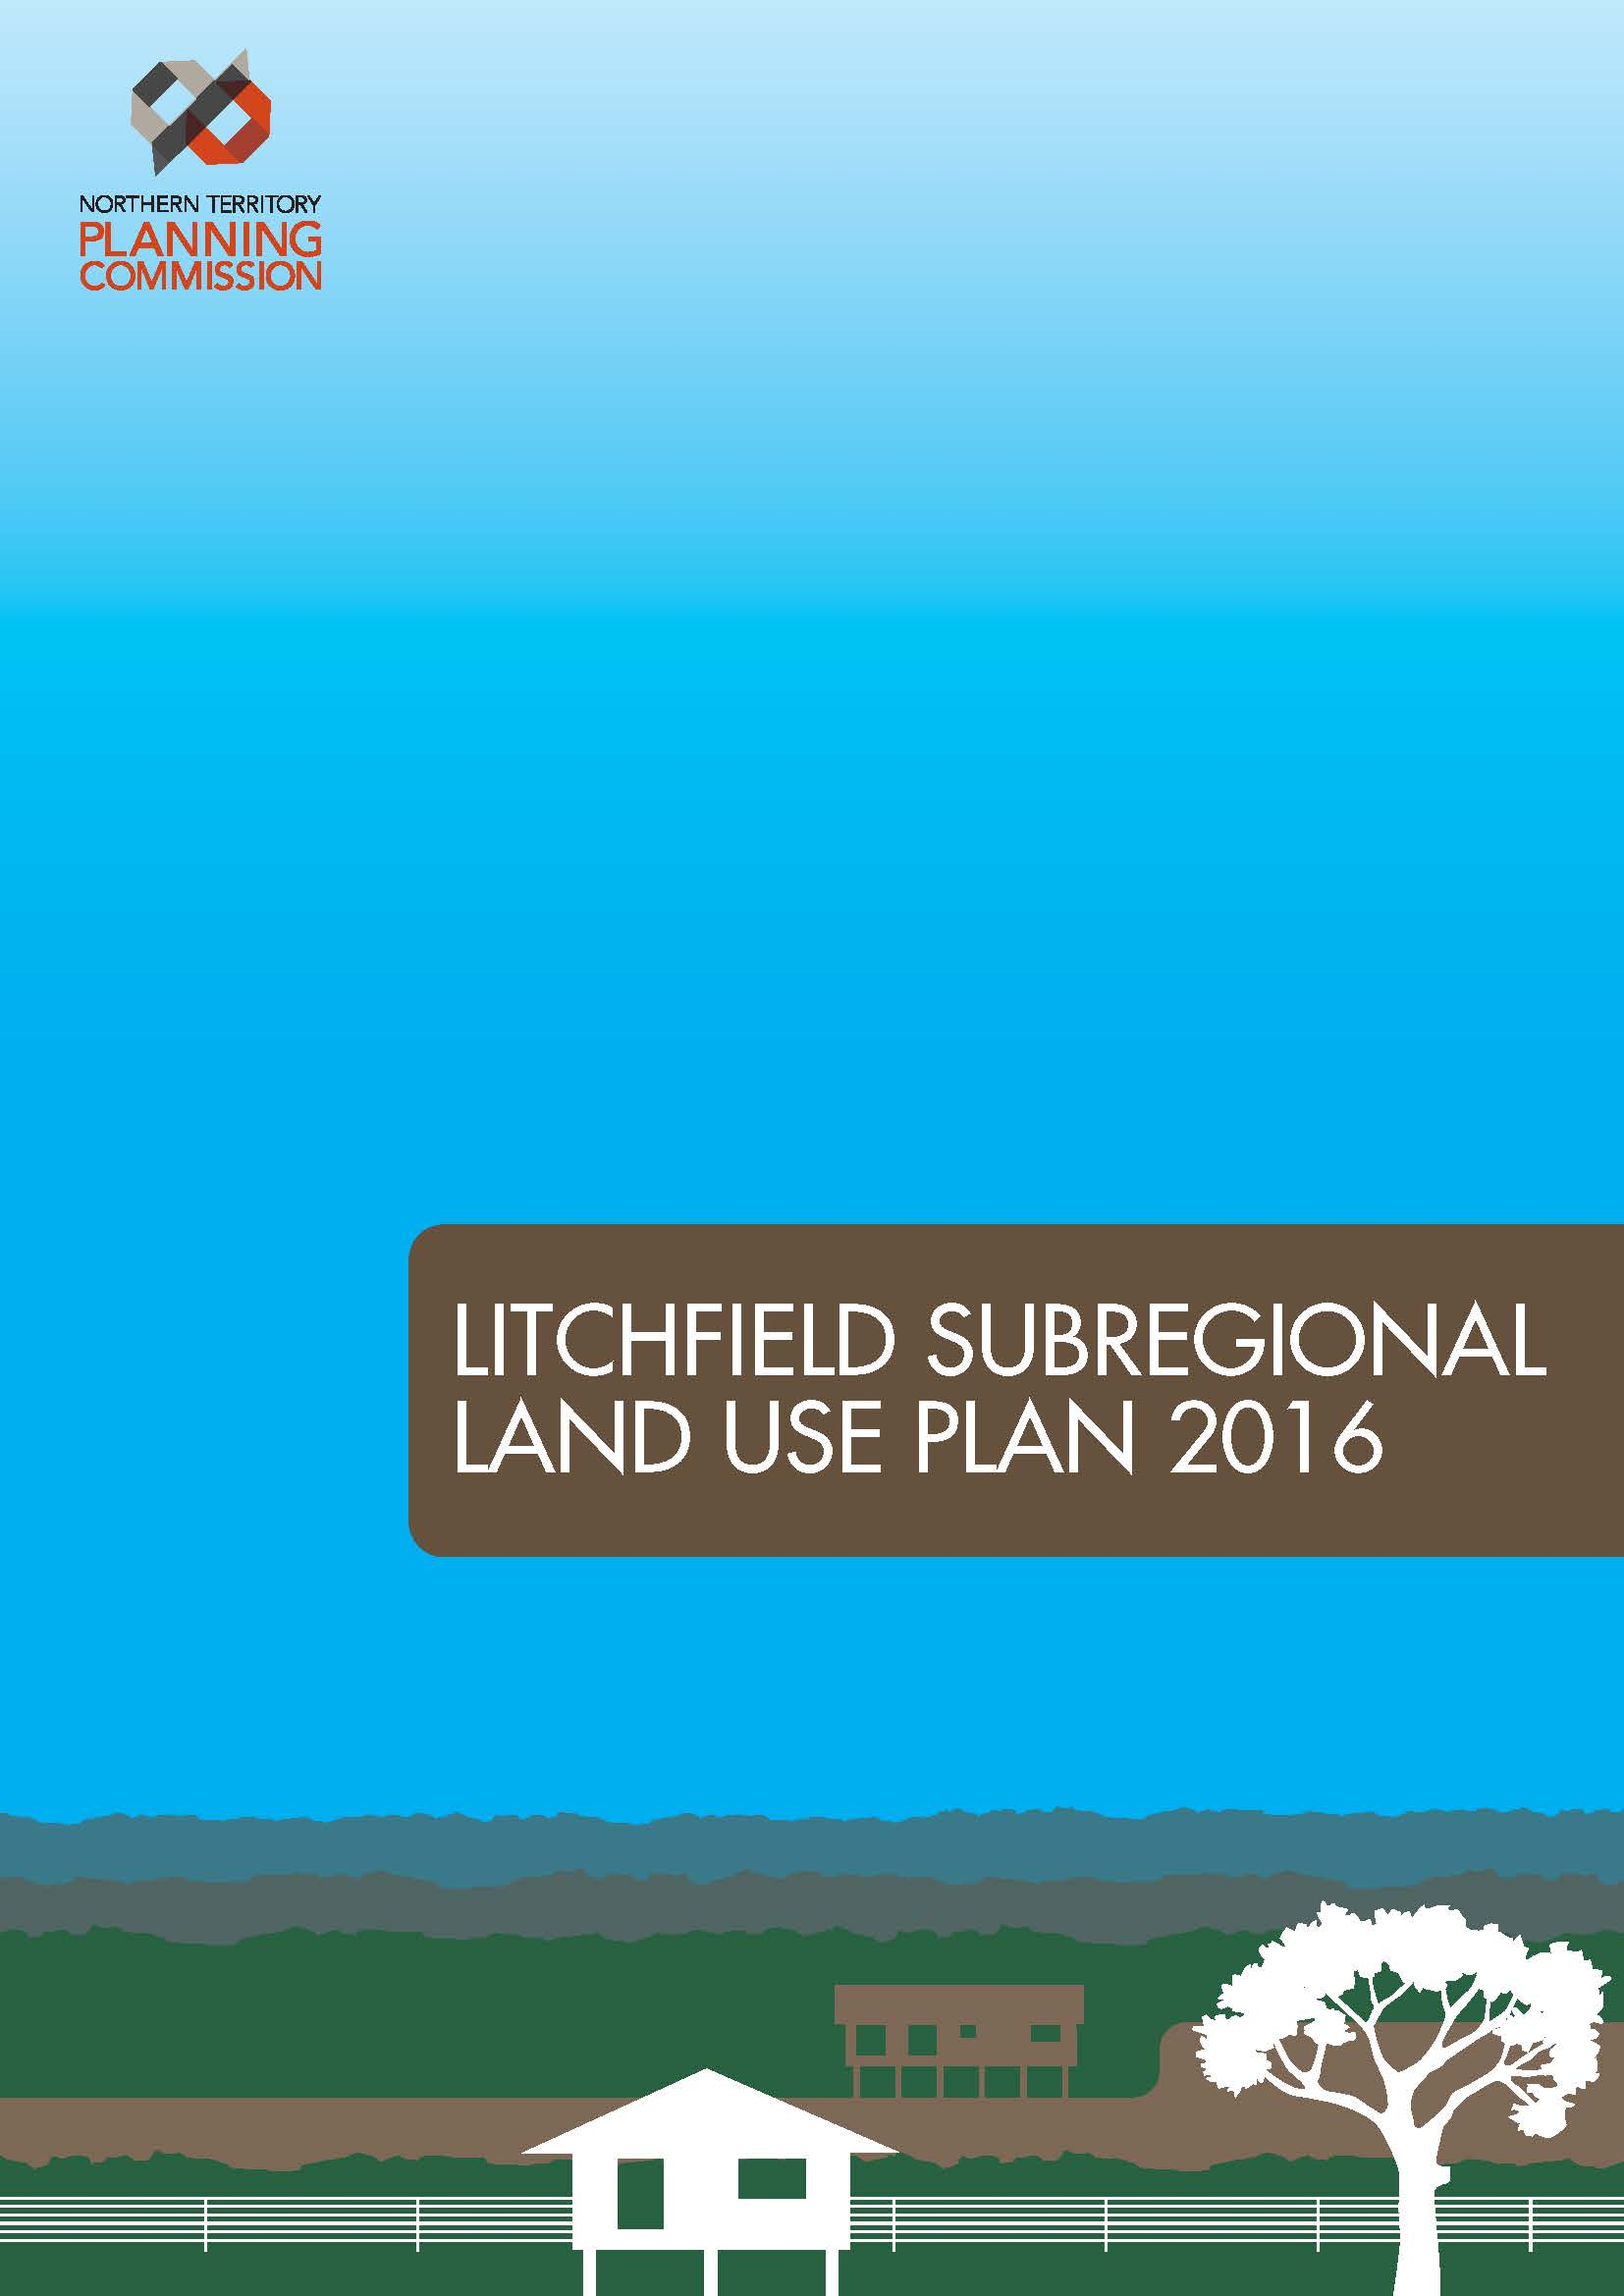 Document Cover - Litchfield Subregional Land Use Plan 2016